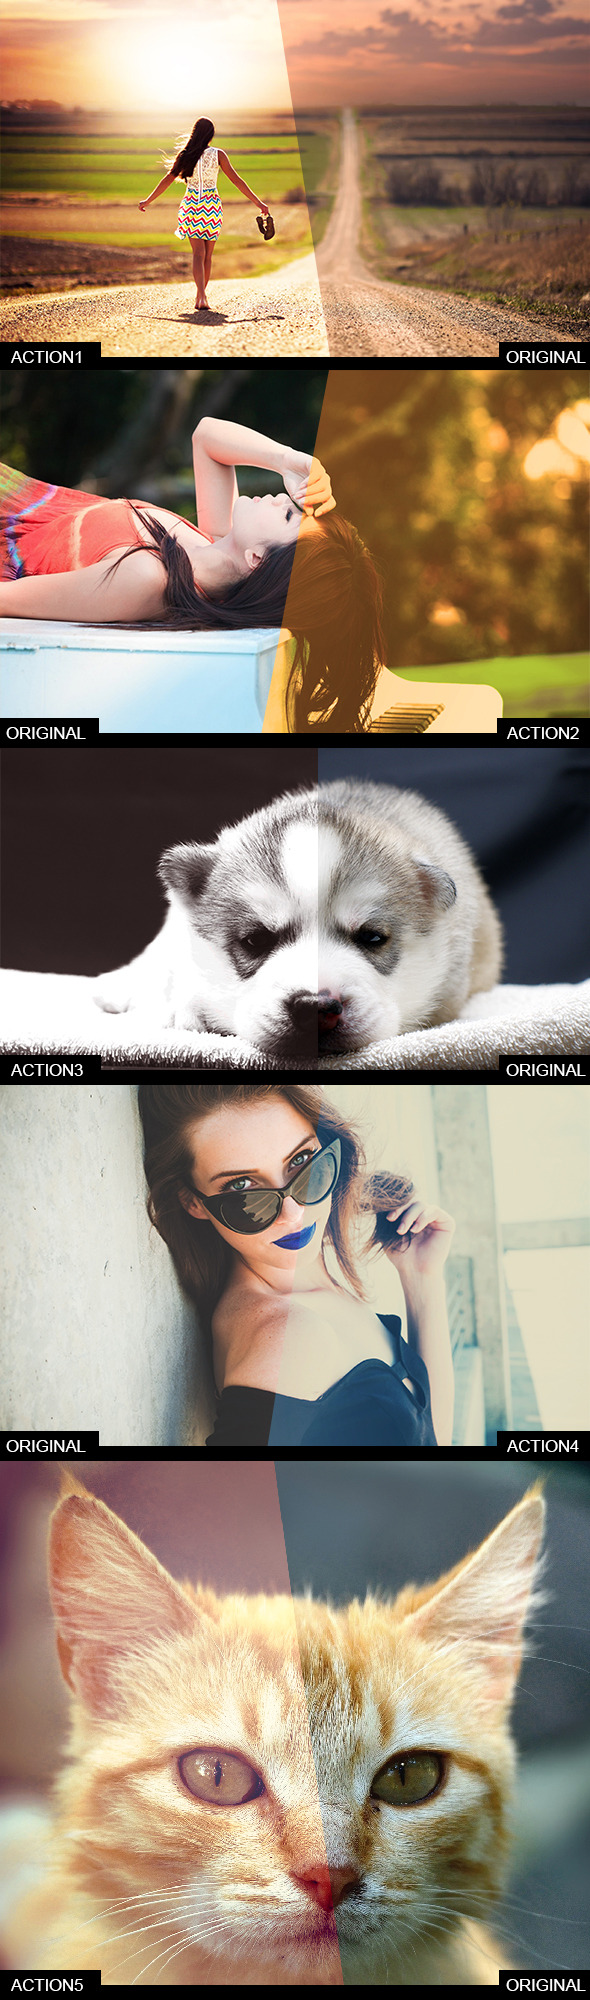 GraphicRiver 5 Quality Actions 8942668